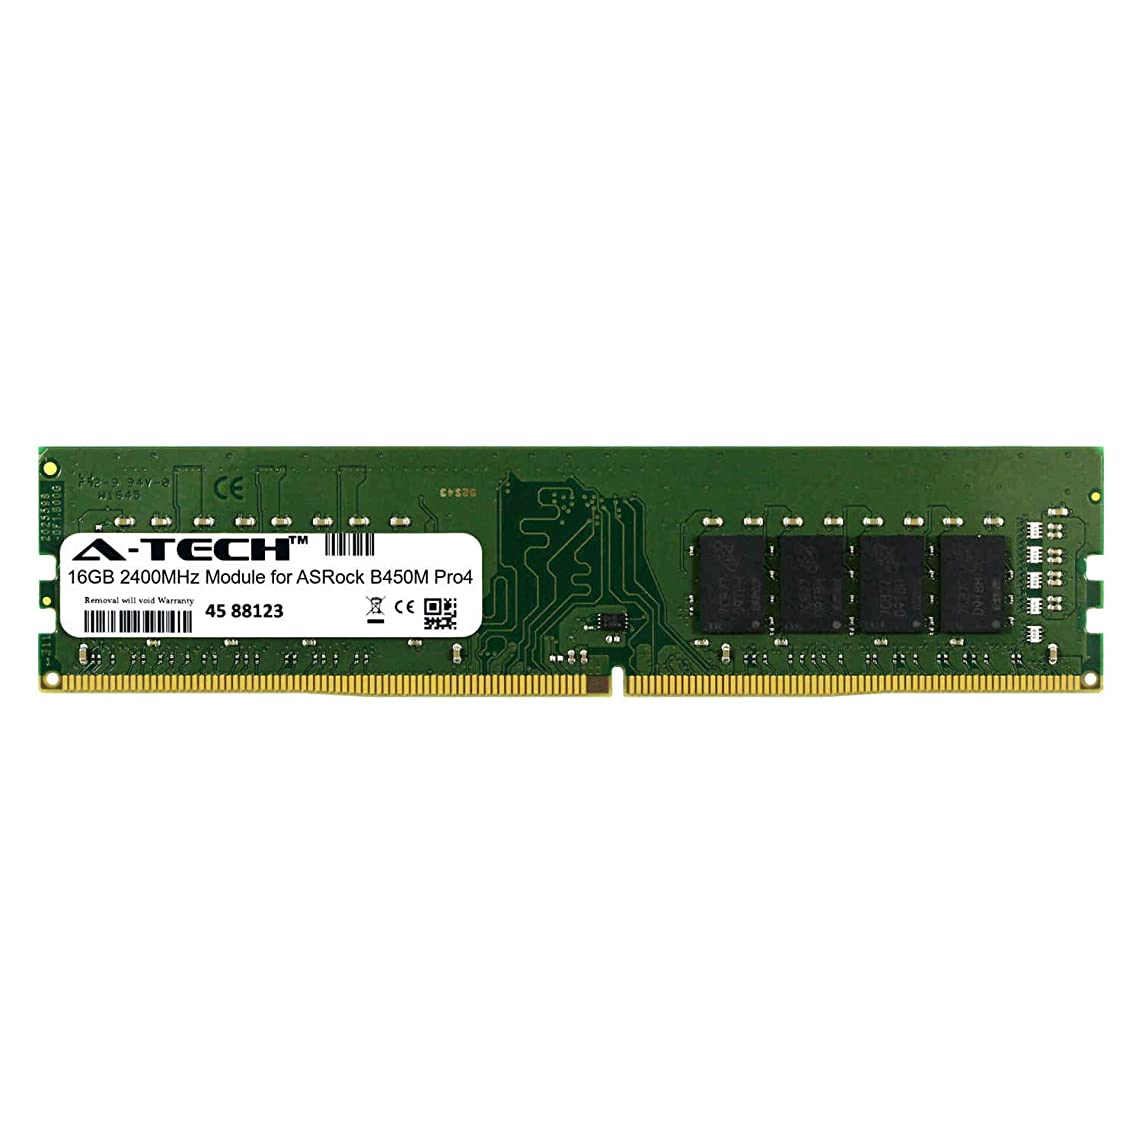 A-Tech 16GB Module for ASRock B450M Pro4 Desktop & Workstation Motherboard Compatible DDR4 2400Mhz Memory Ram (ATMS395893A25822X1)